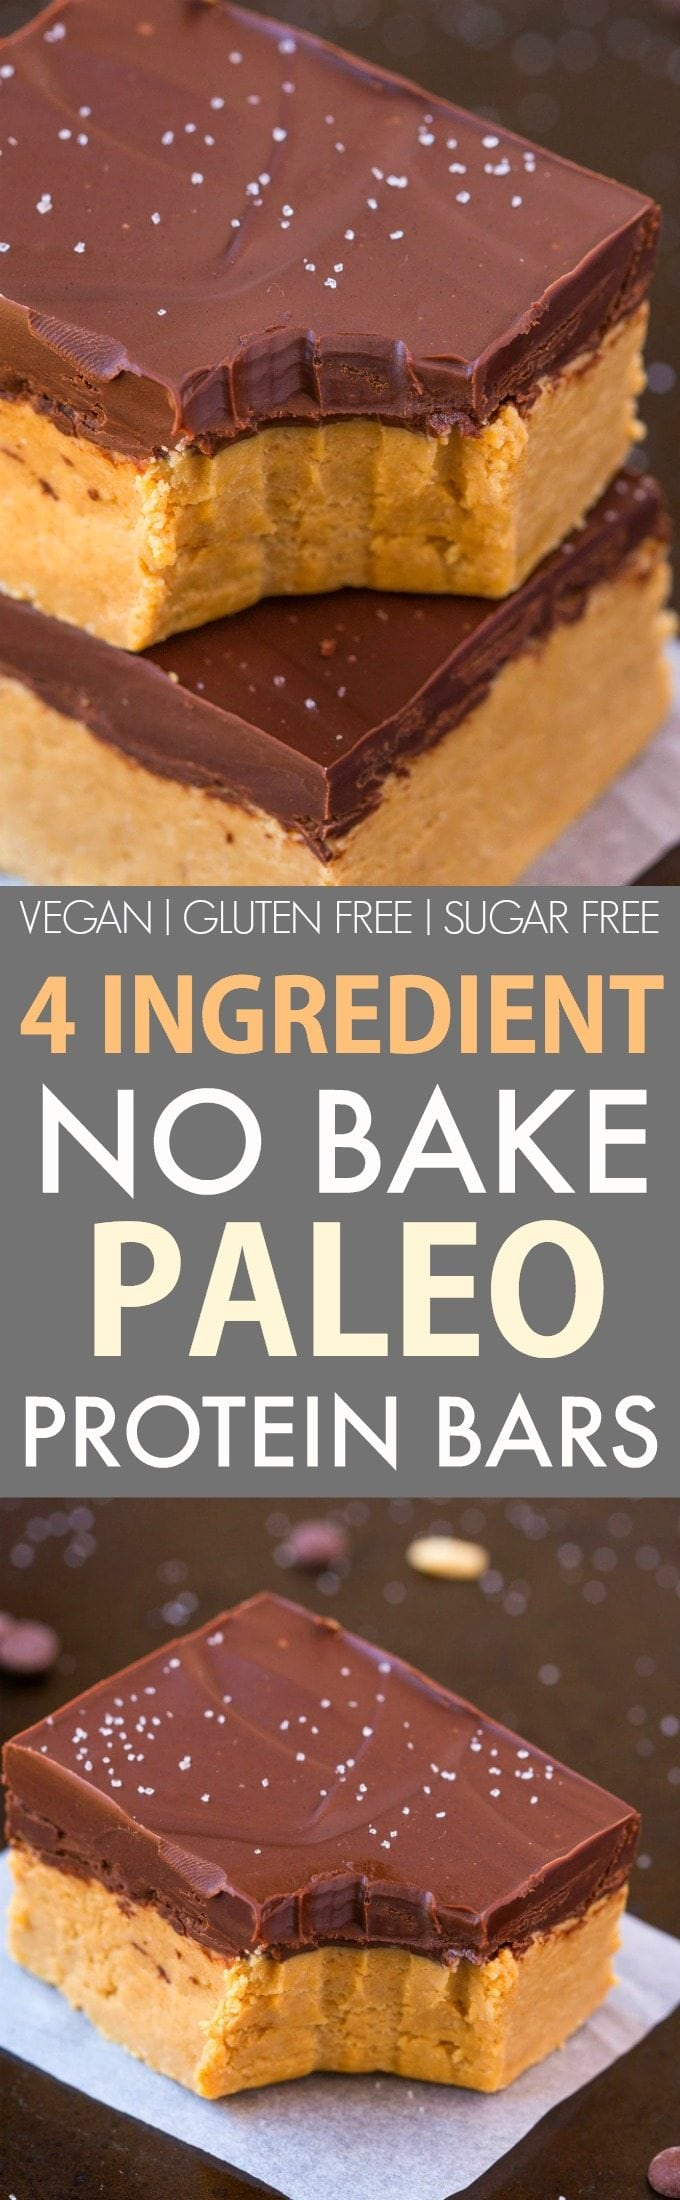 4-Ingredient No Bake Paleo Protein Bars (V, GF, DF)- Thick, chewy and fudgy protein bars which are better than anything store bought! Ready in 5 minutes and the perfect low carb and sugar free snack! {vegan, gluten free, dairy free recipe}- thebigmansworld.com